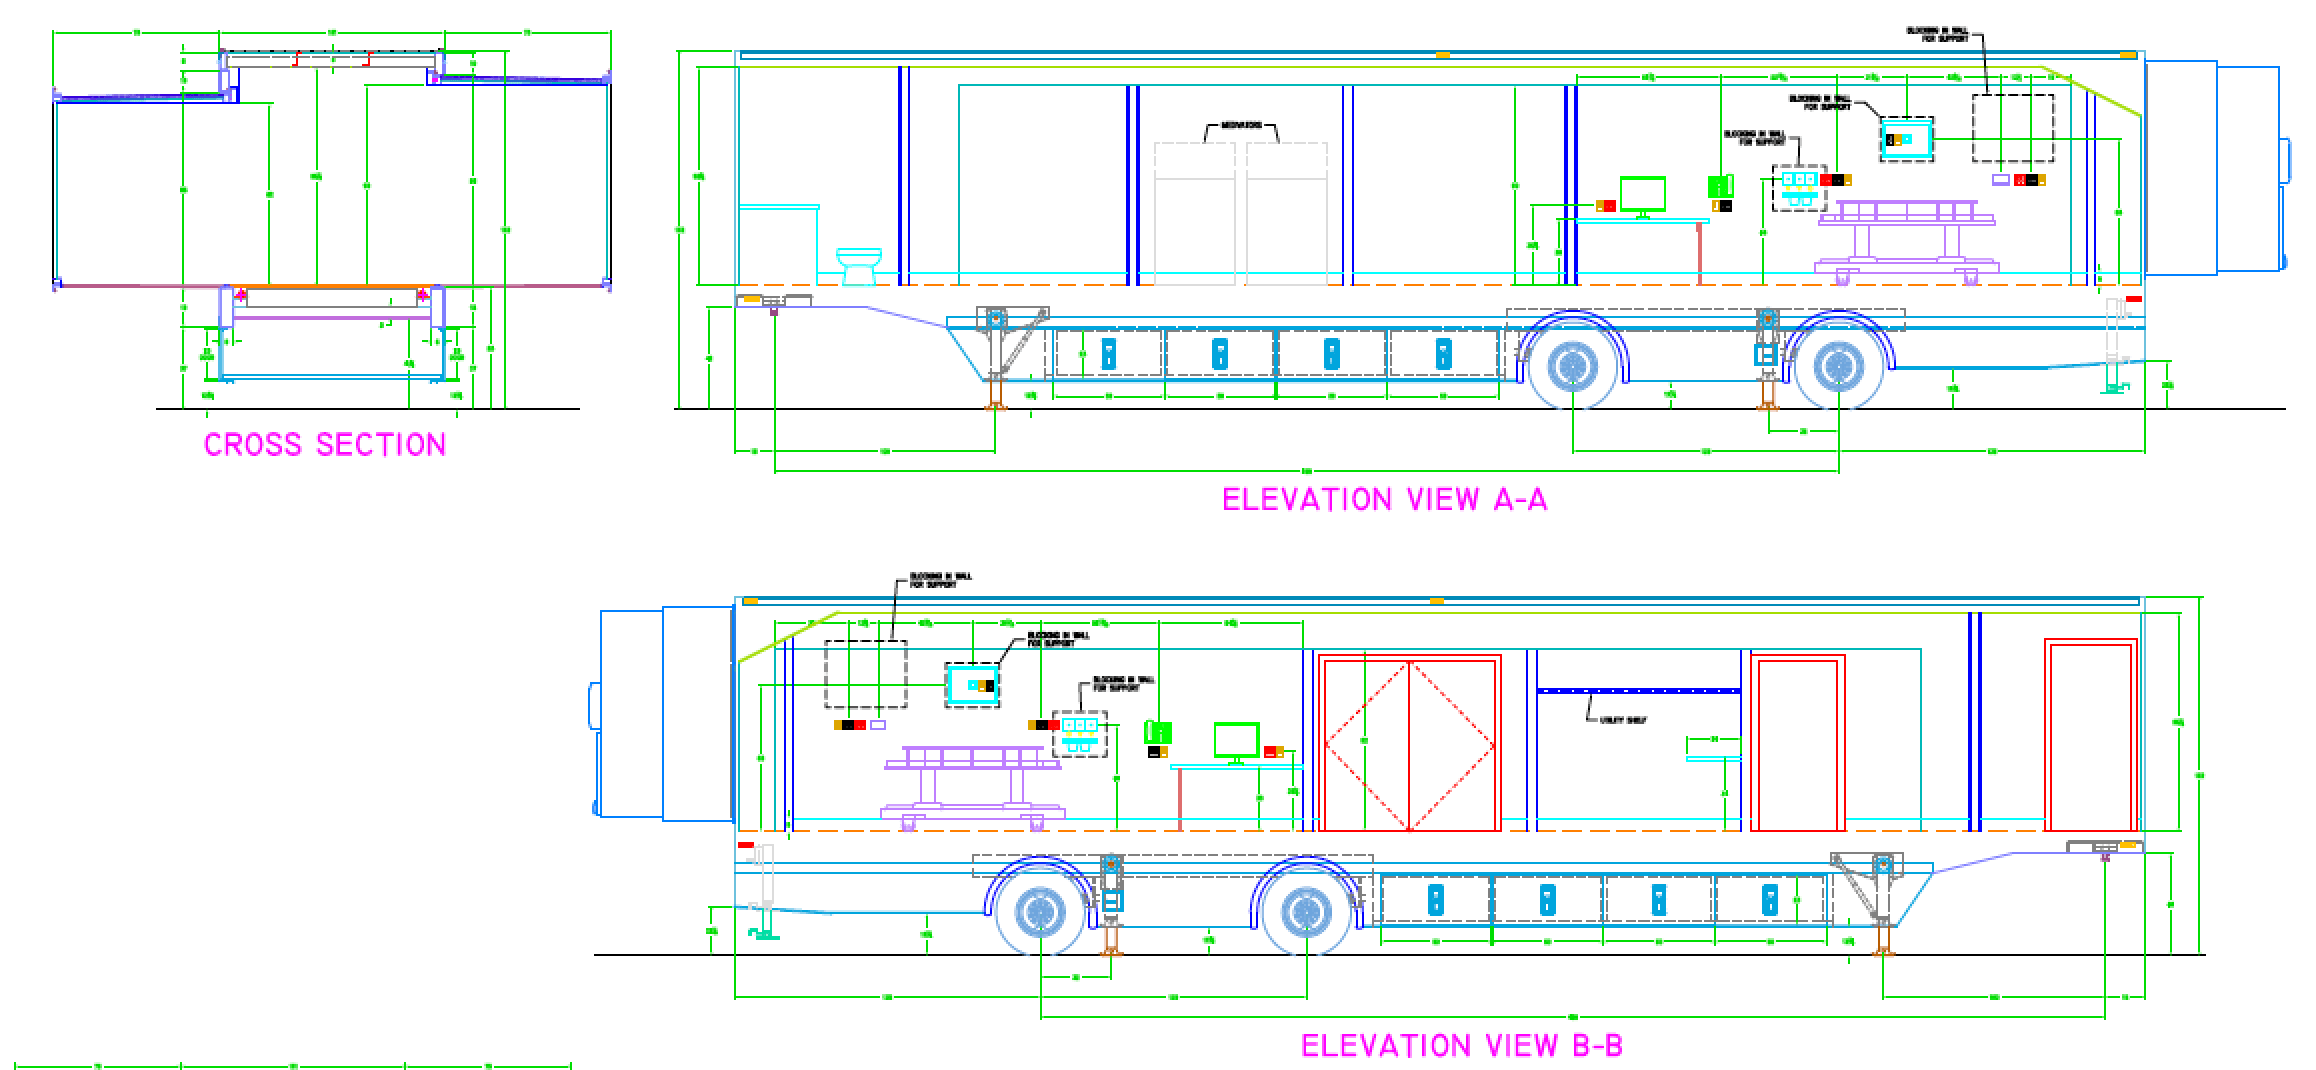 s plan wiring diagram ceiling fan 2 switches pre-owned mobile medical trailers - healthcare facilities llc